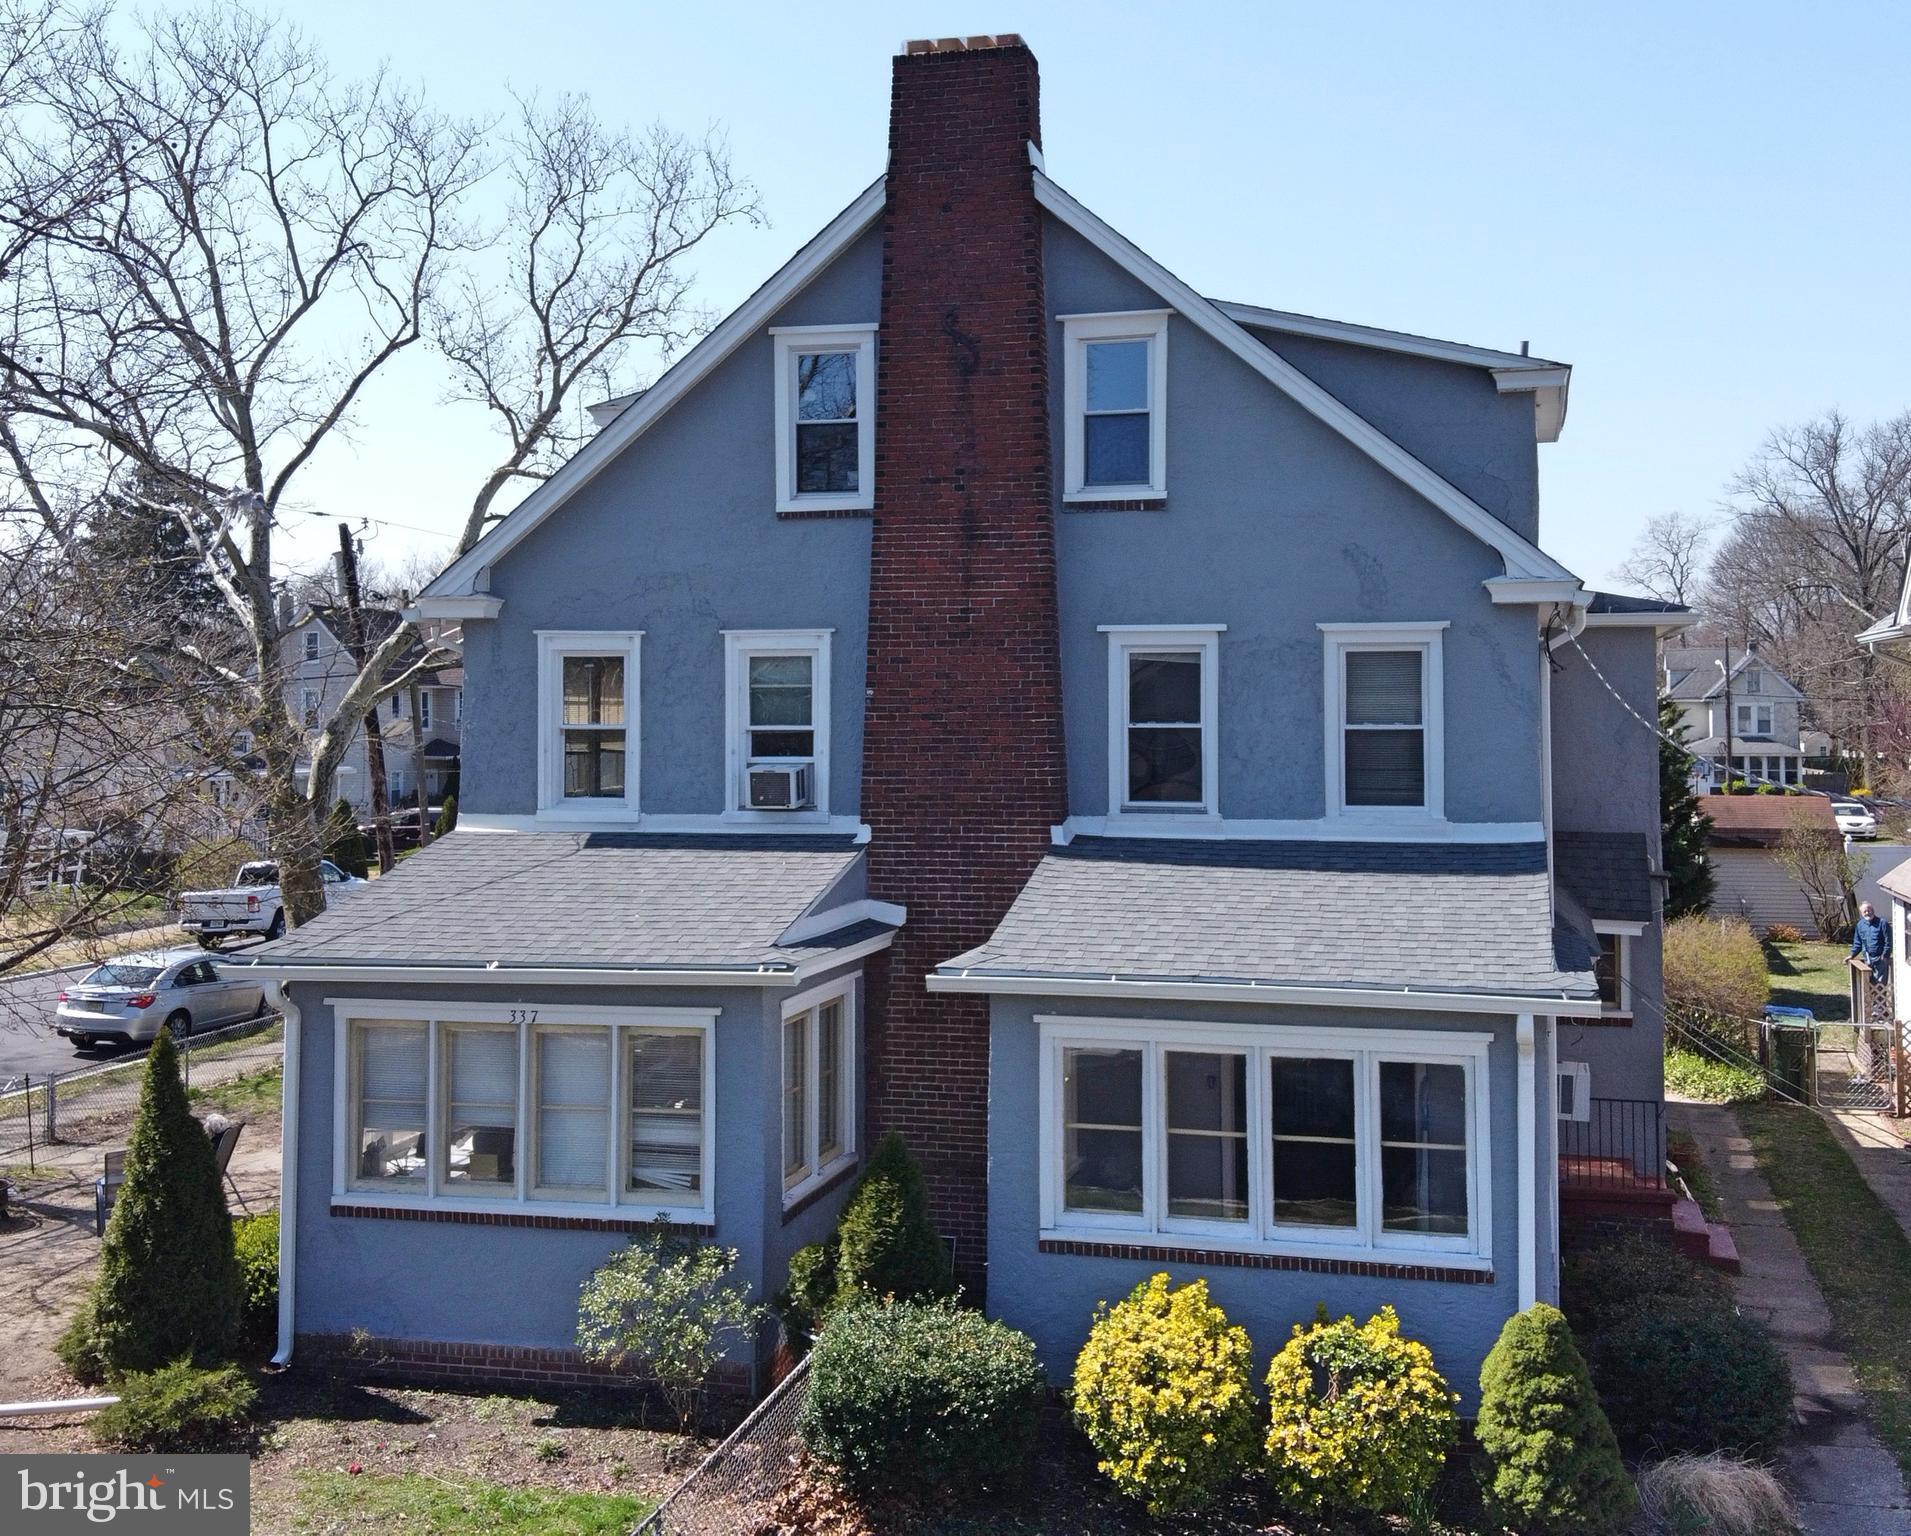 335 LECONEY AVENUE, PALMYRA, NJ 08065